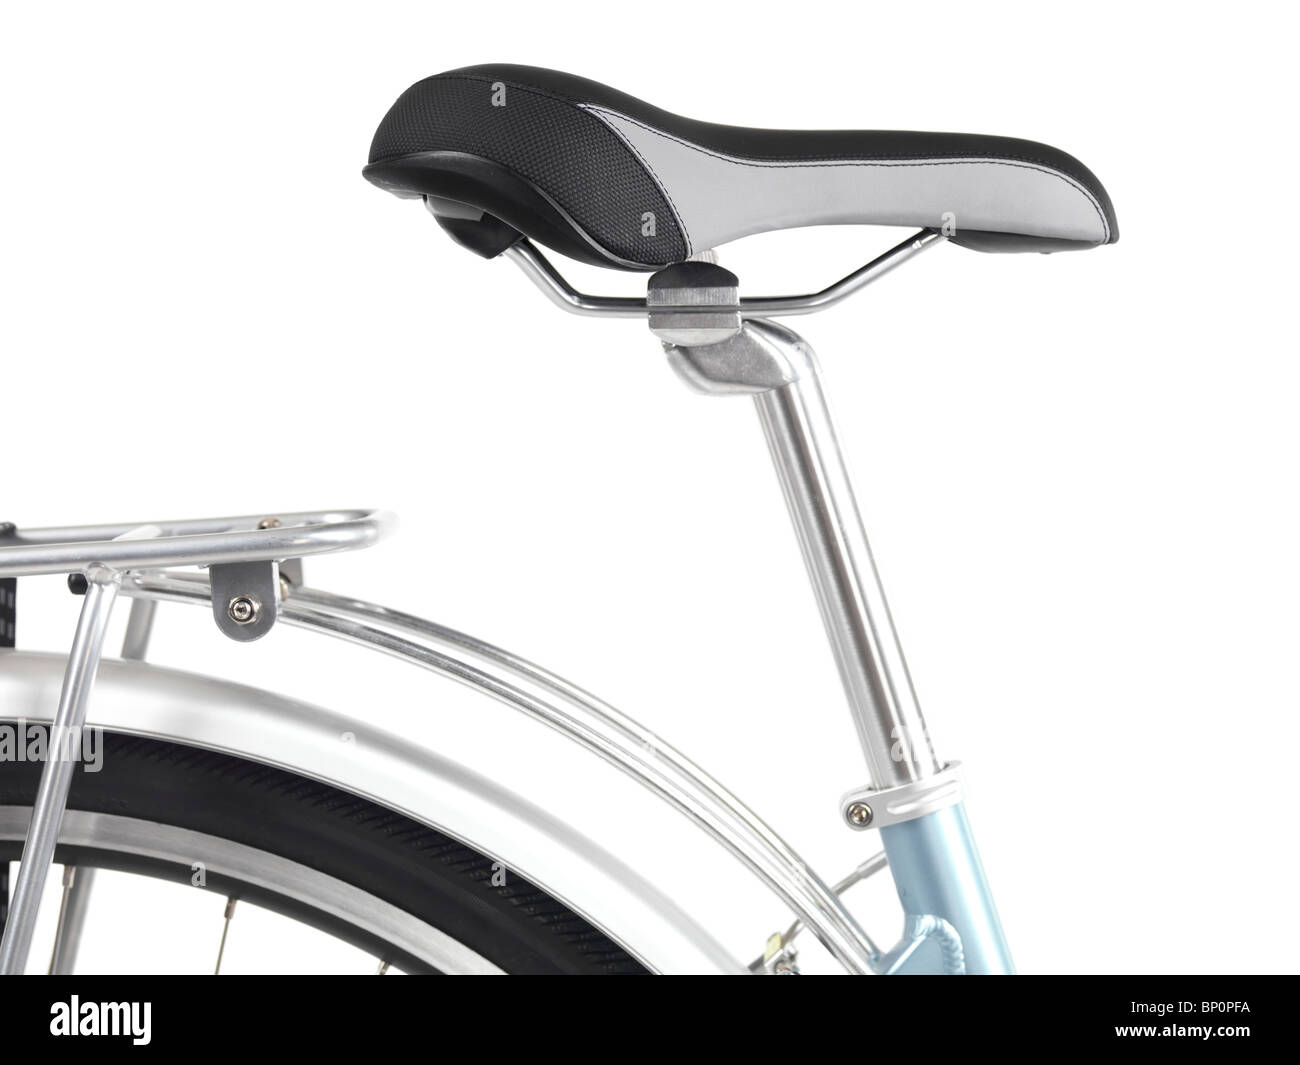 Closeup of a Bicycle seat isolated on white background - Stock Image